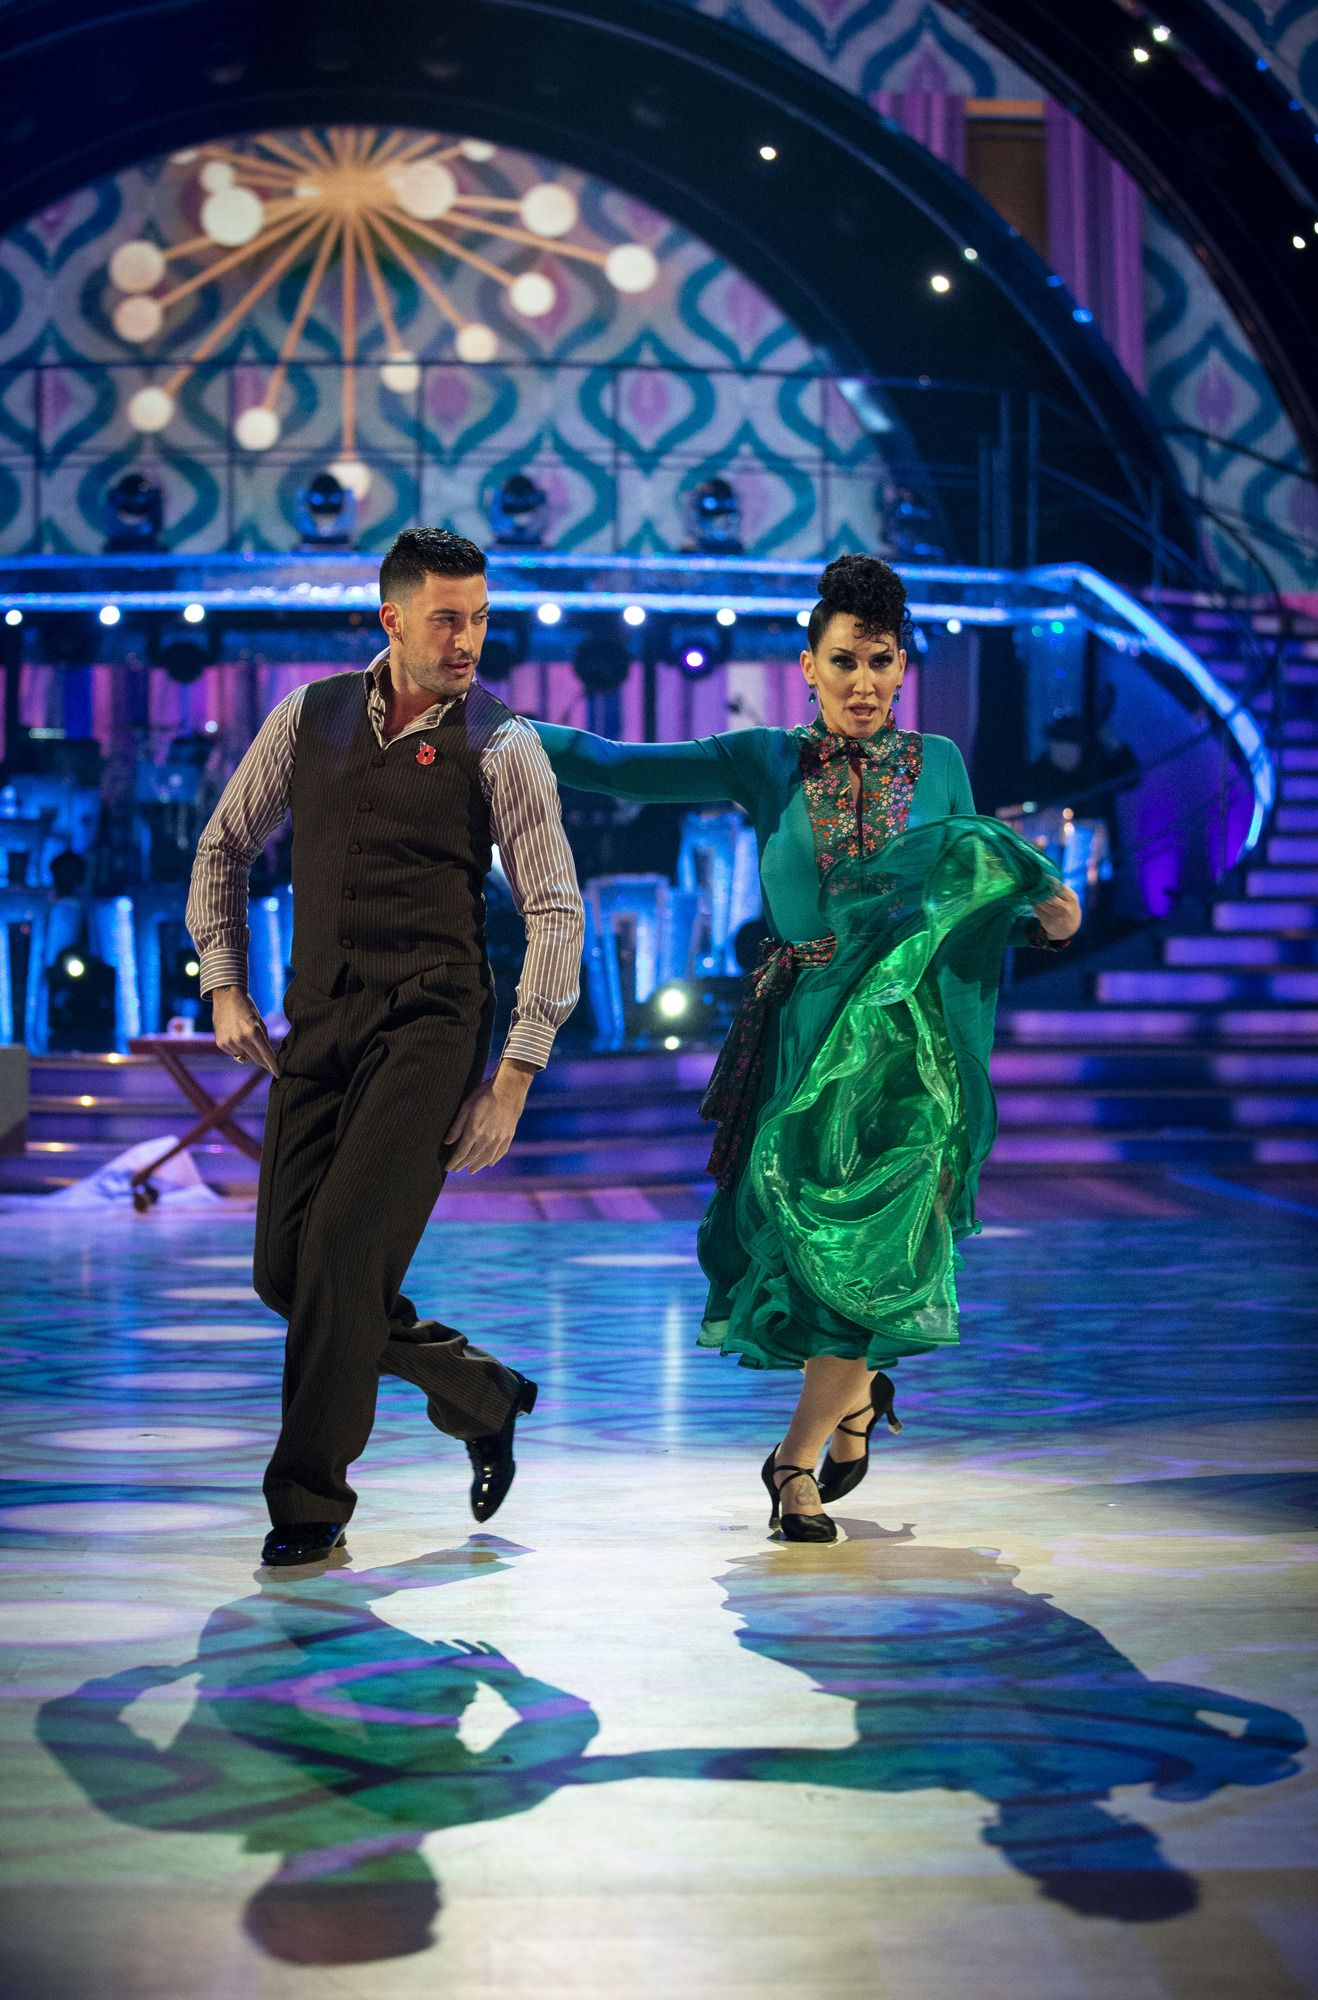 Strictly Come Dancing reveals the songs and dance choices for Blackpool